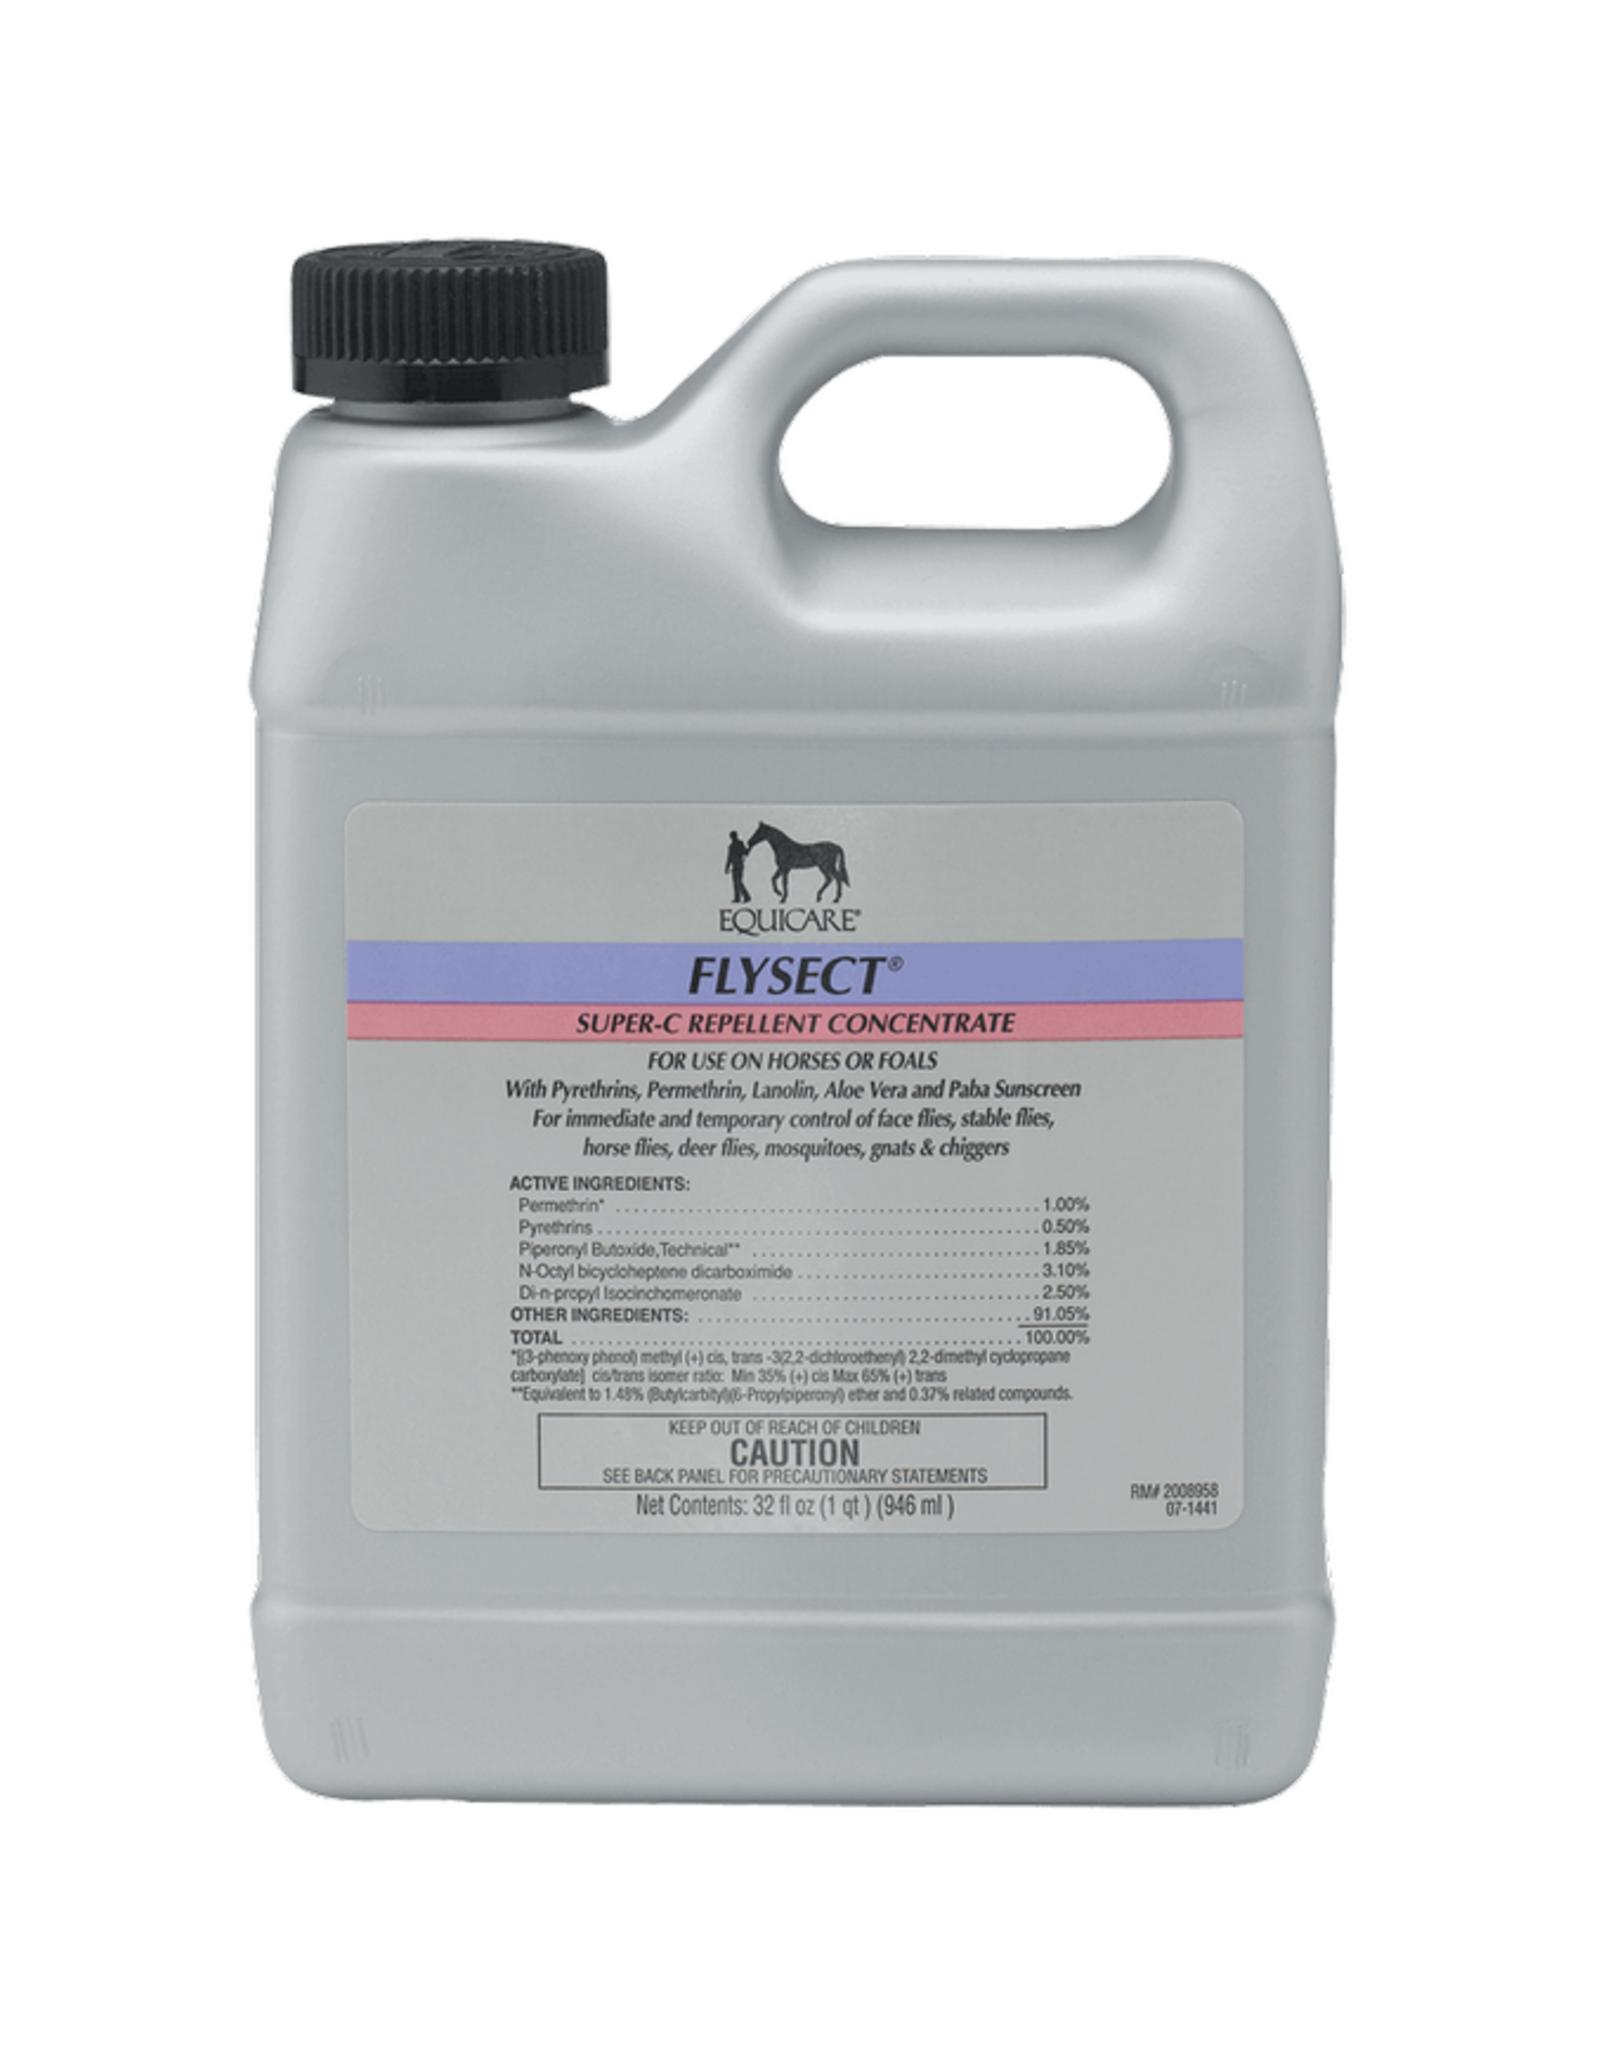 Equicare Flysect Super-C Concentrate Fly Repellent - 32oz